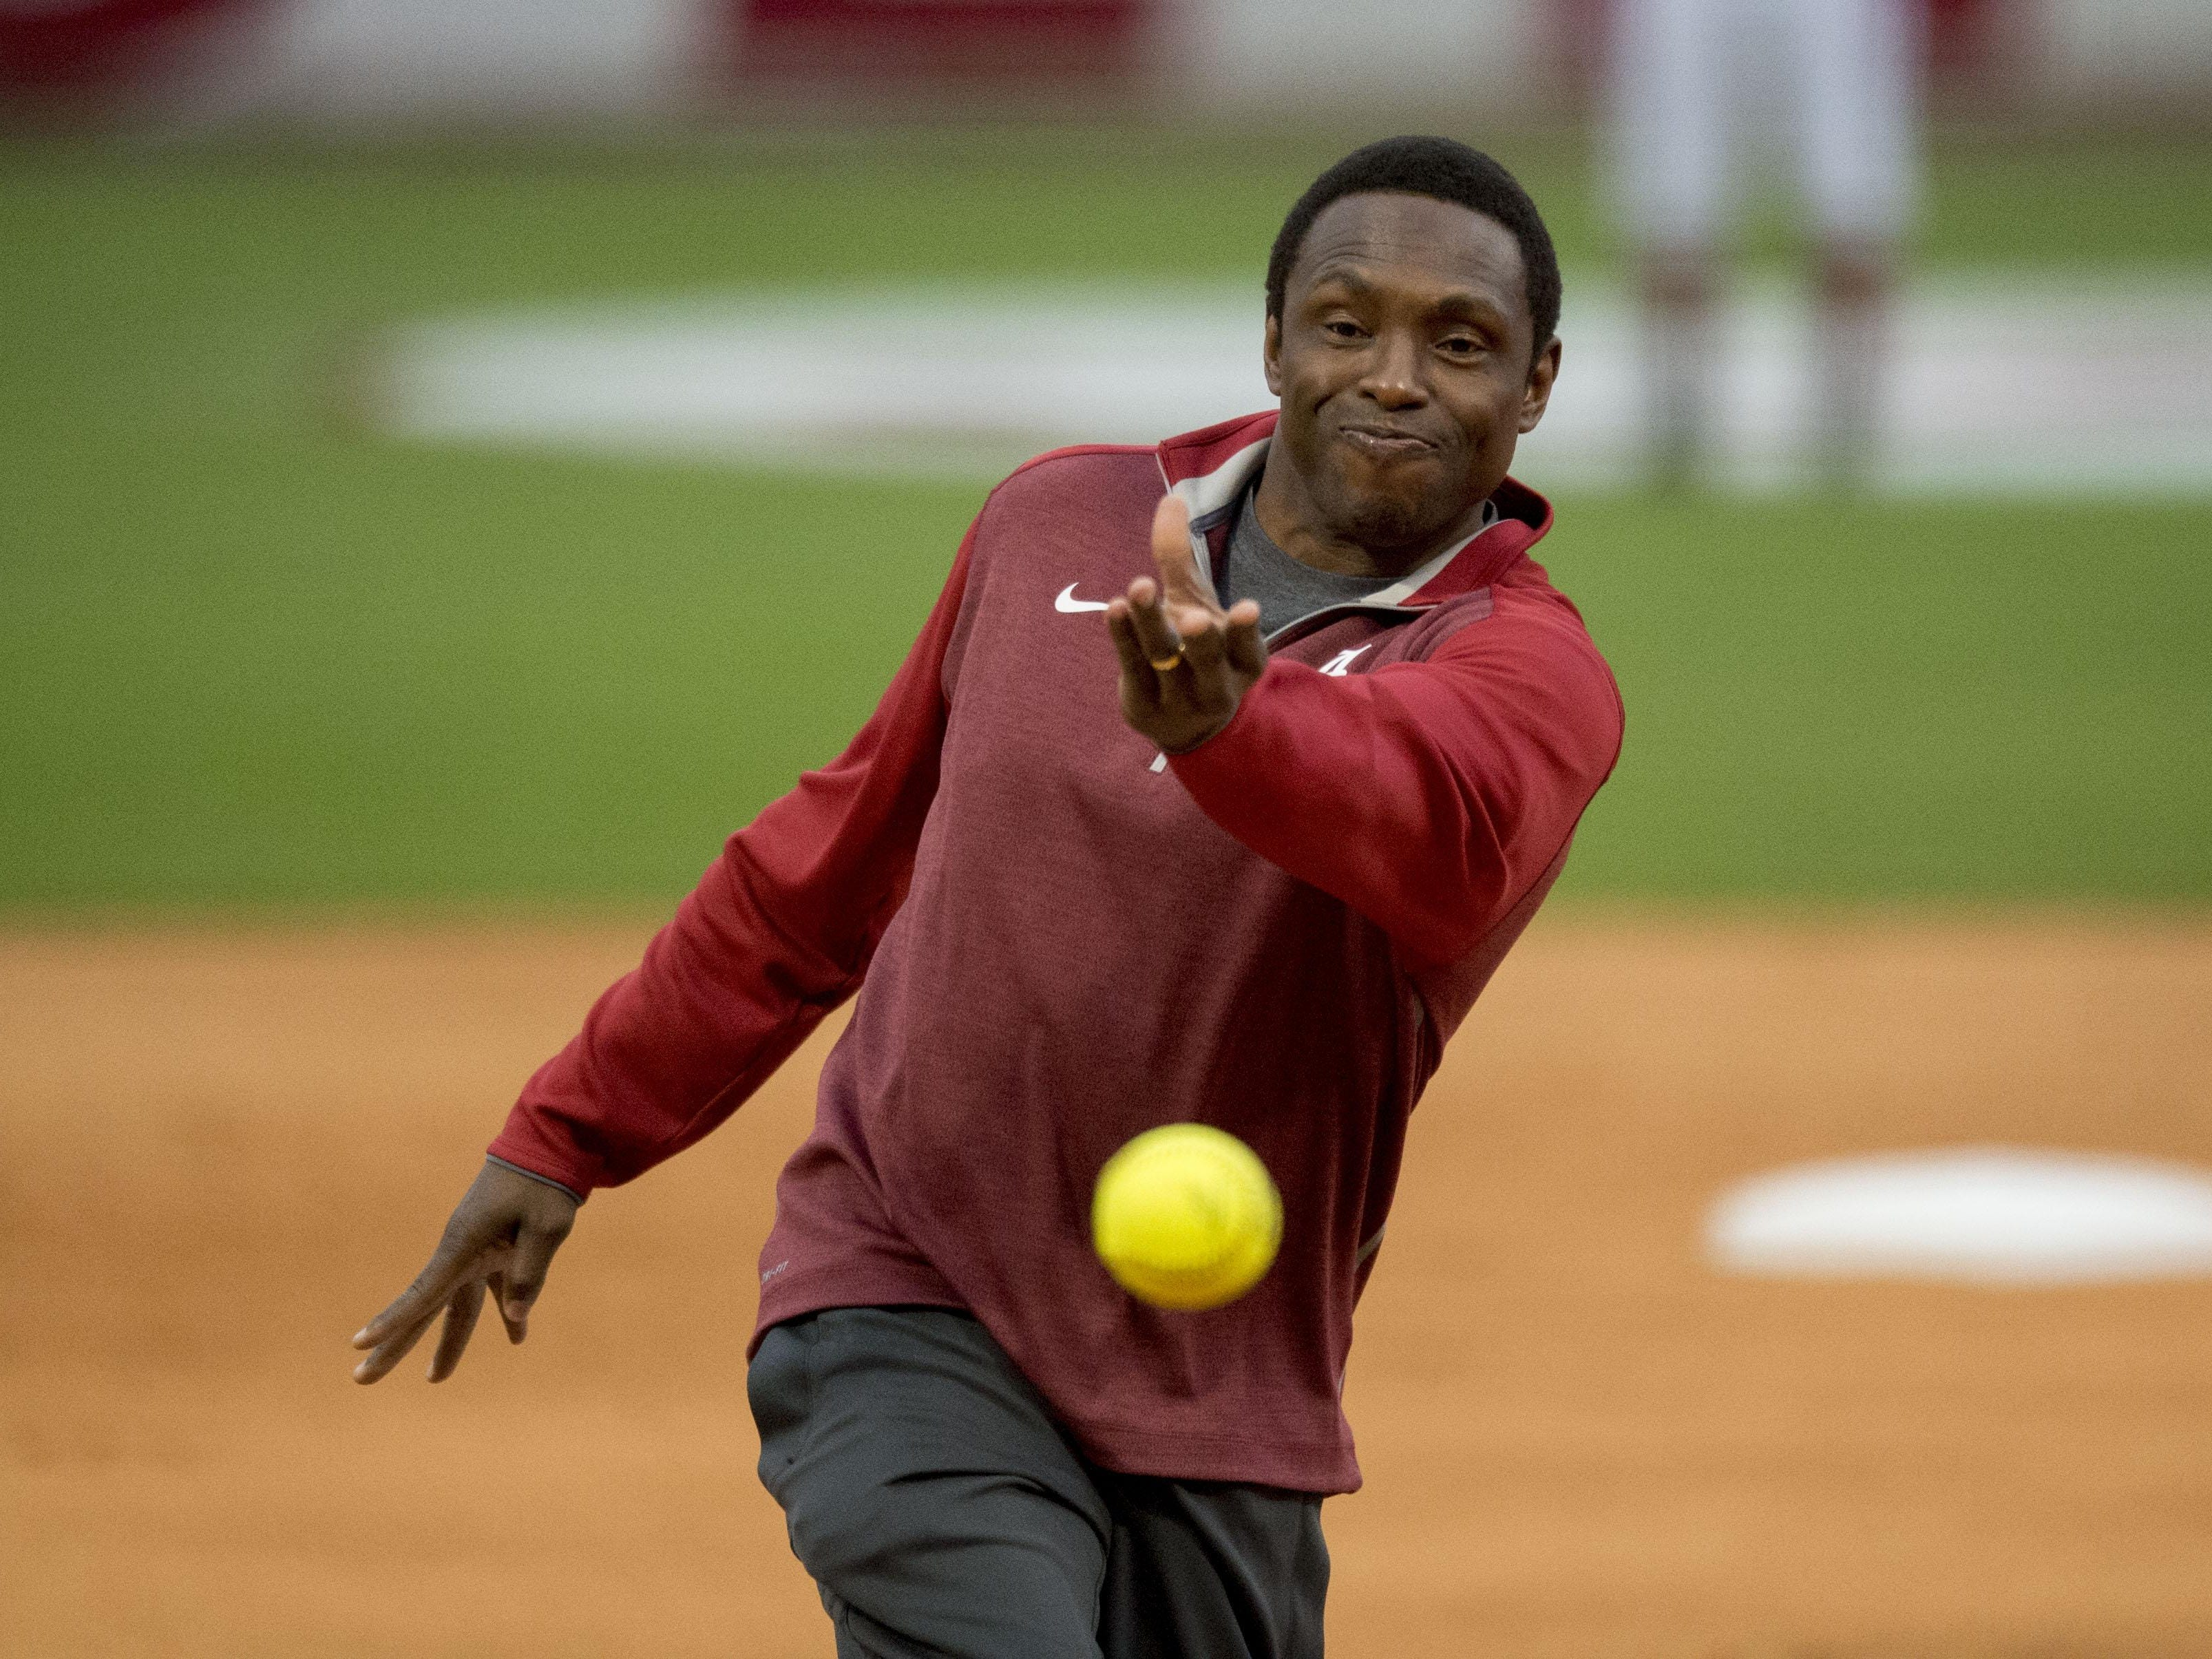 Alabama basketball coach Avery Johnson throws out the first pitch before an Alabama softball game against Tennessee in Tuscaloosa. The new coaching quartet of Johnson, Ben Howland, Mike White and Rick Barnes will join the rest of the SEC in looking to knock off John Calipari and his Kentucky Wildcats.